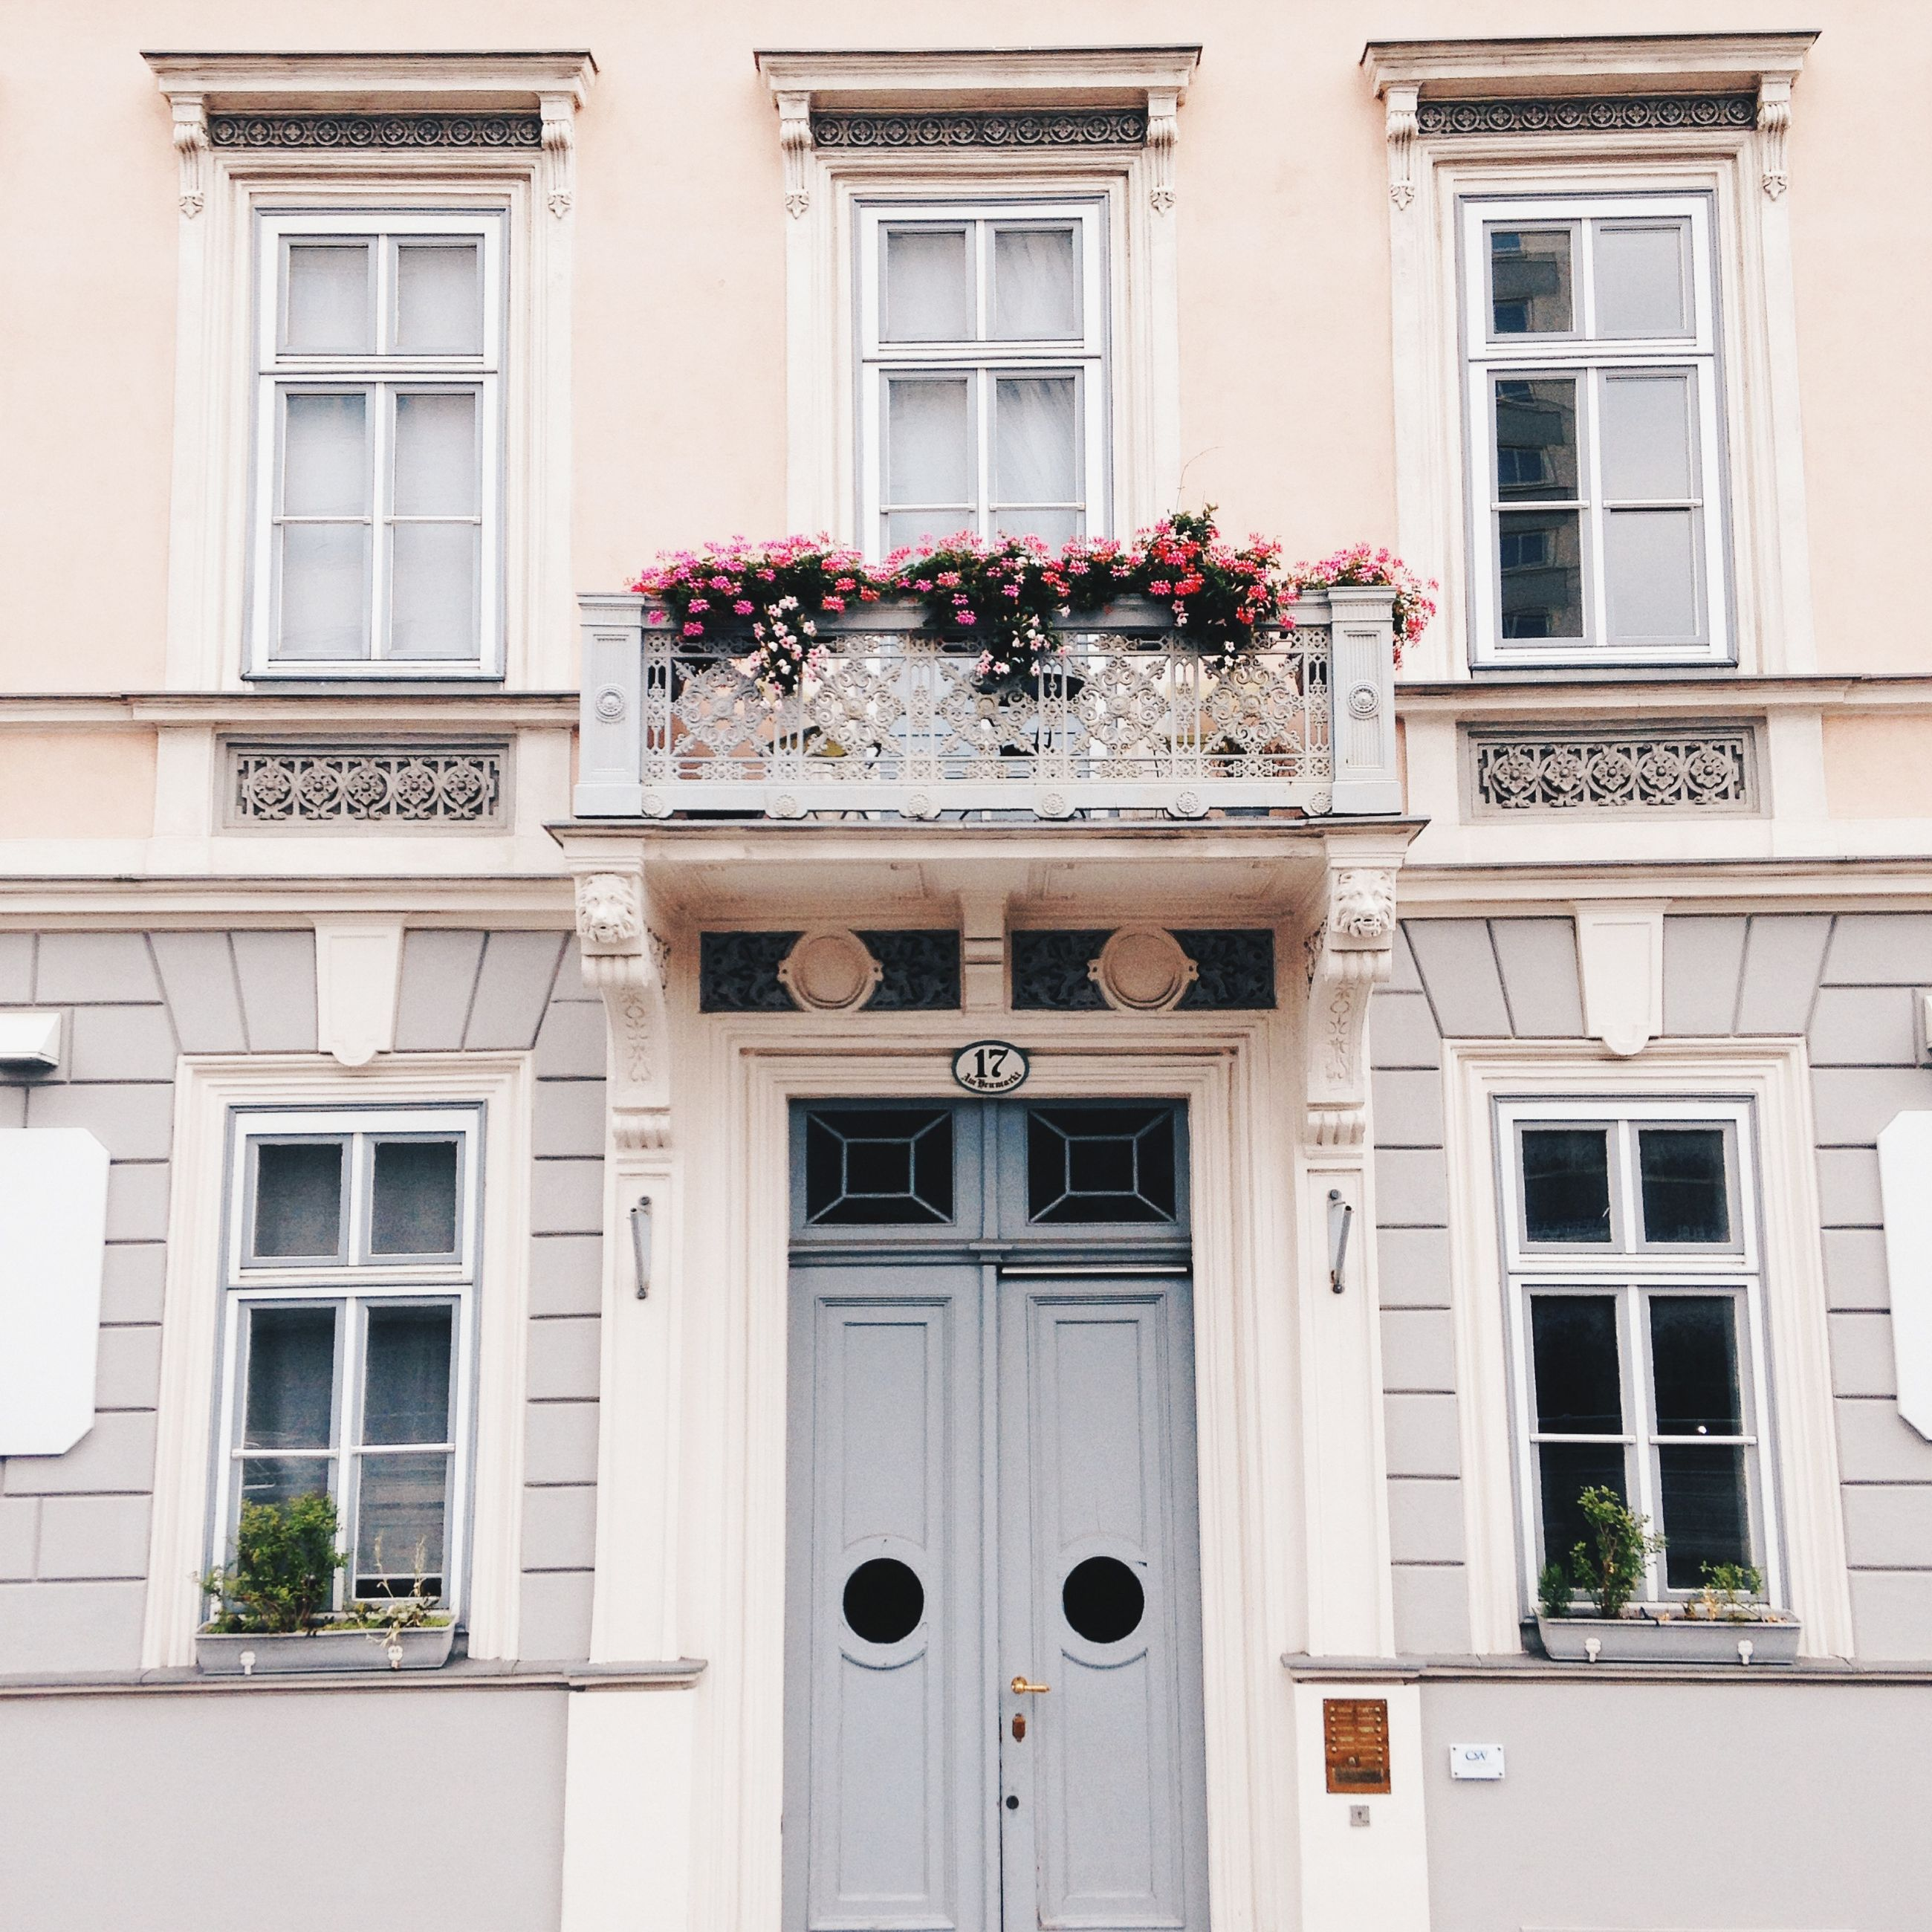 building exterior, architecture, built structure, window, residential building, residential structure, balcony, building, house, flower, facade, low angle view, glass - material, city, day, growth, outdoors, apartment, no people, door